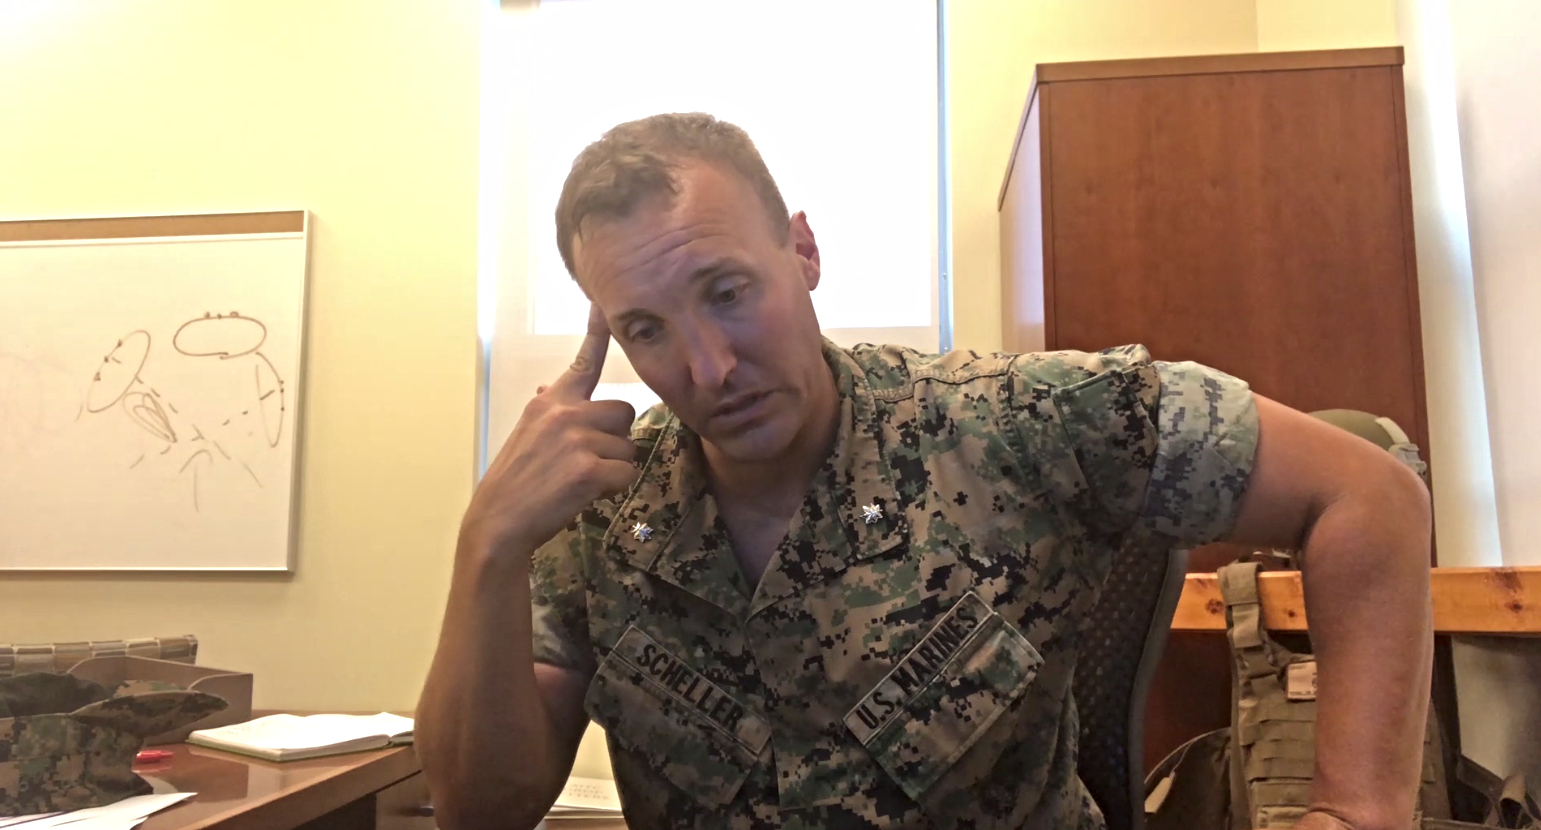 Marine demands senior leaders accept 'accountability' for Afghanistan gets removed from position – Fox News